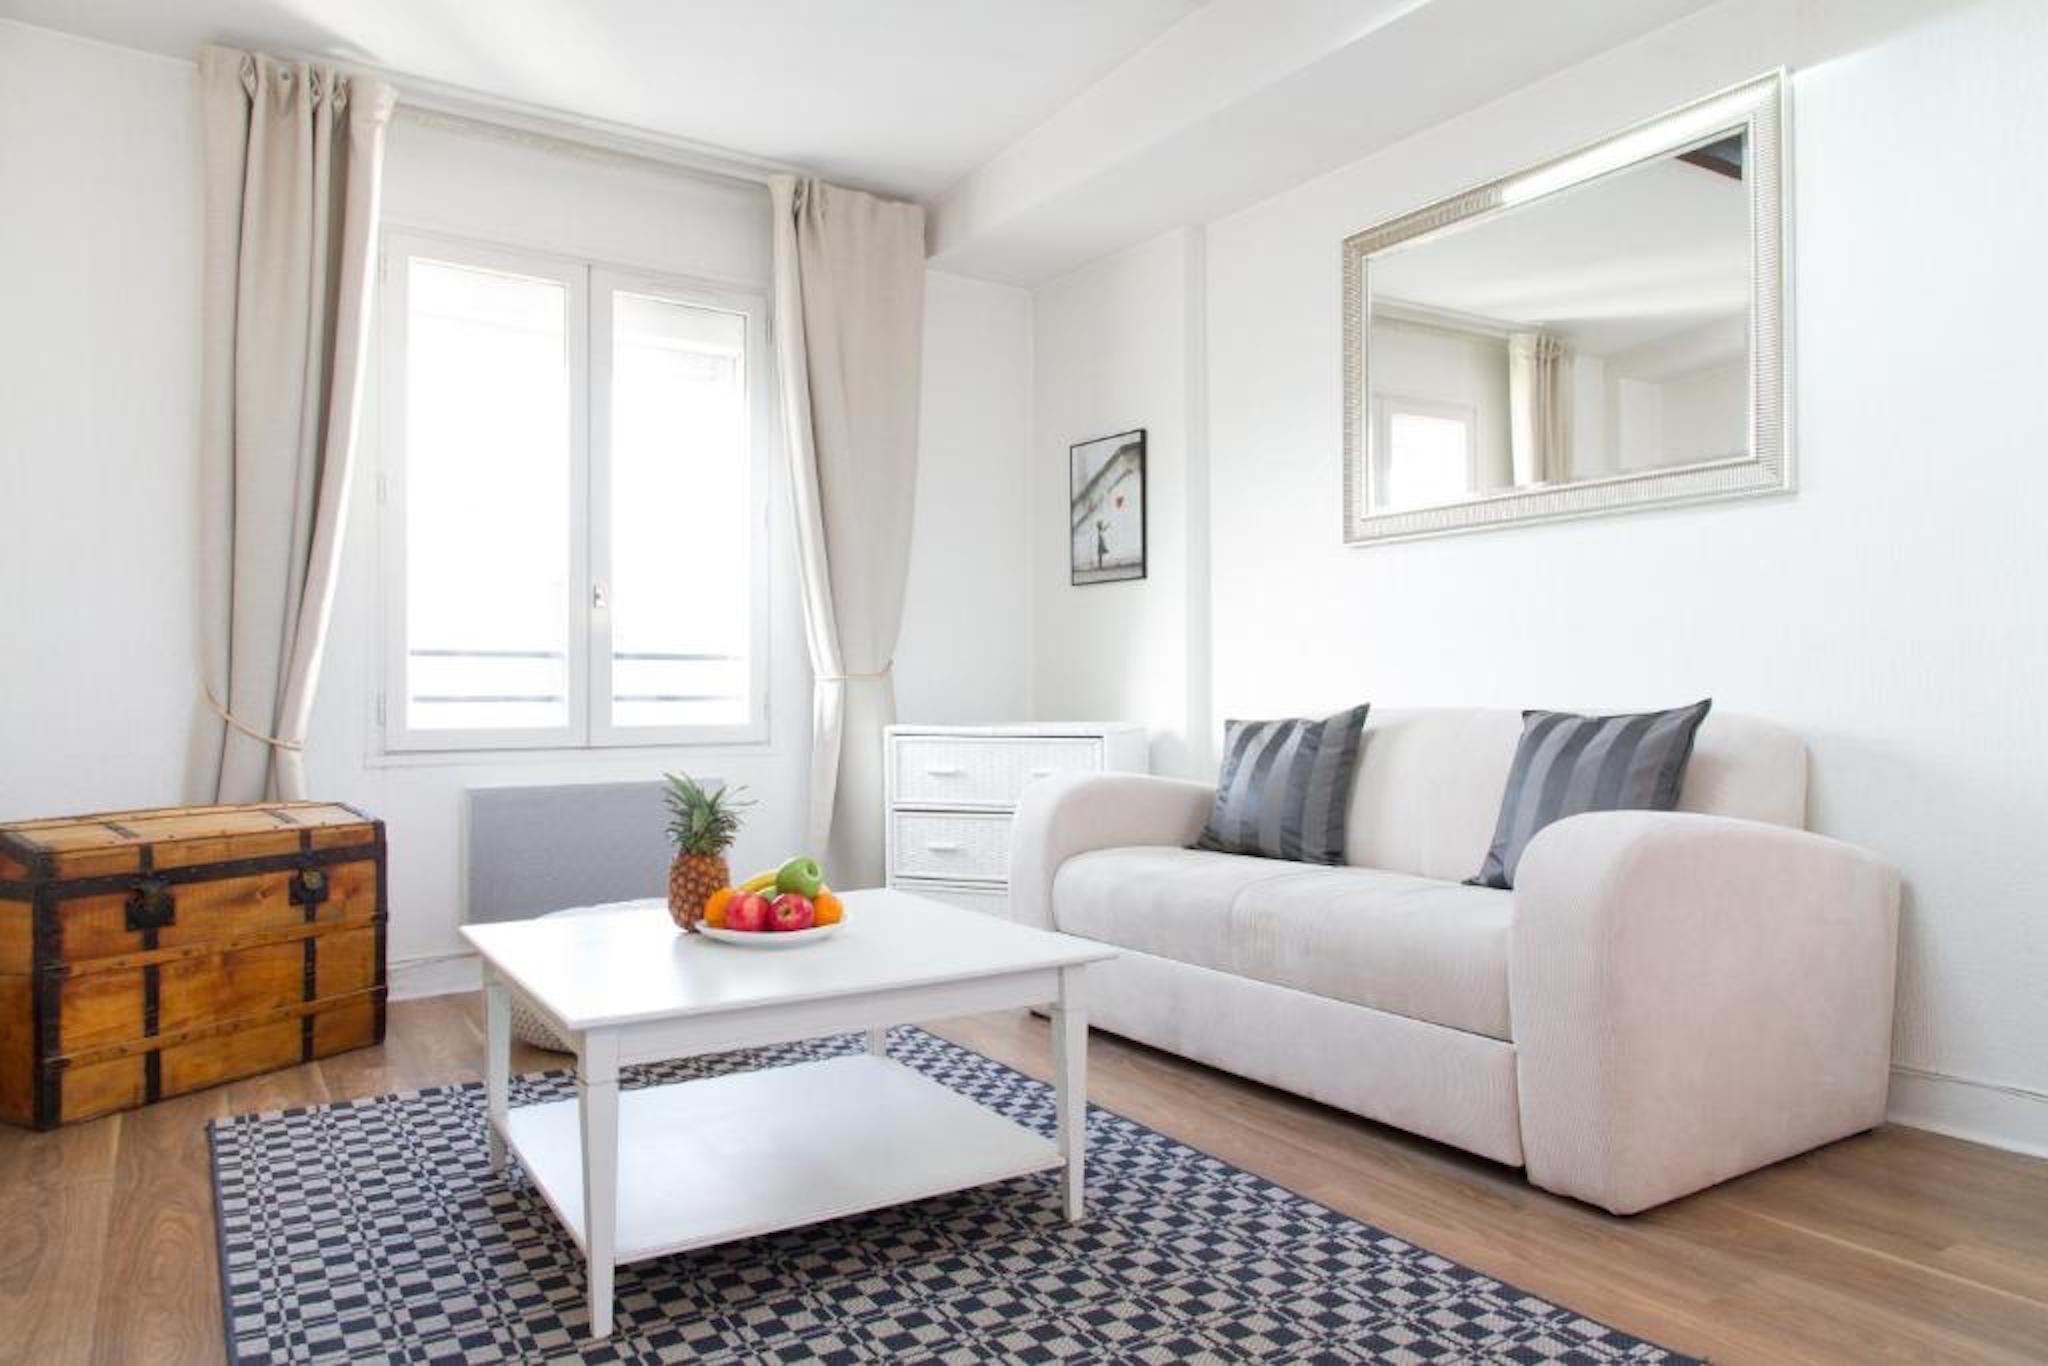 LOVELY 1BR- THE HEART OF LE MARAIS NEAR POMPIDOU